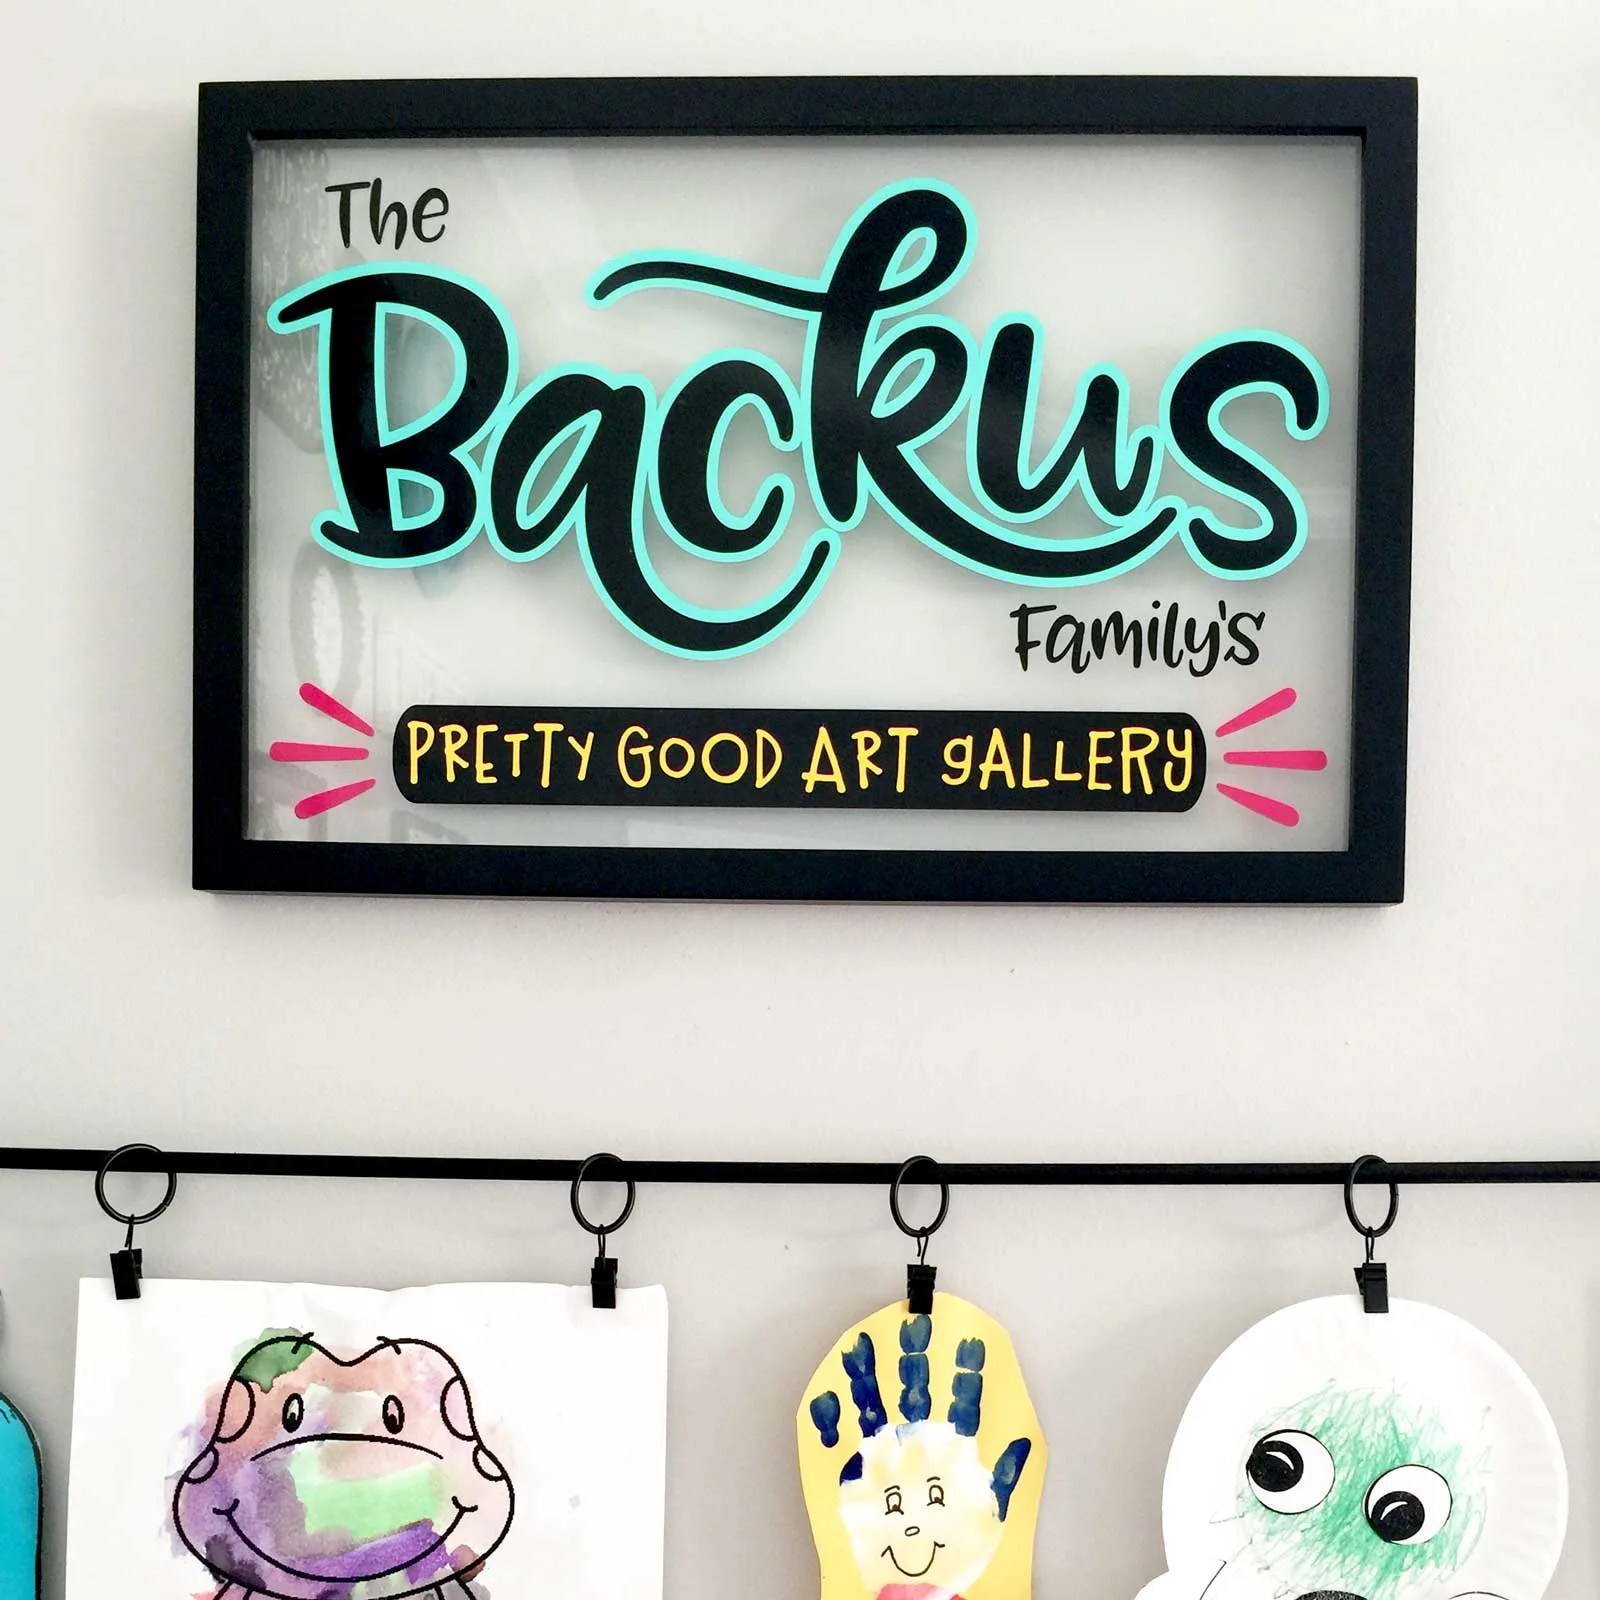 Personalized Family Art Gallery Sign for kids art display.